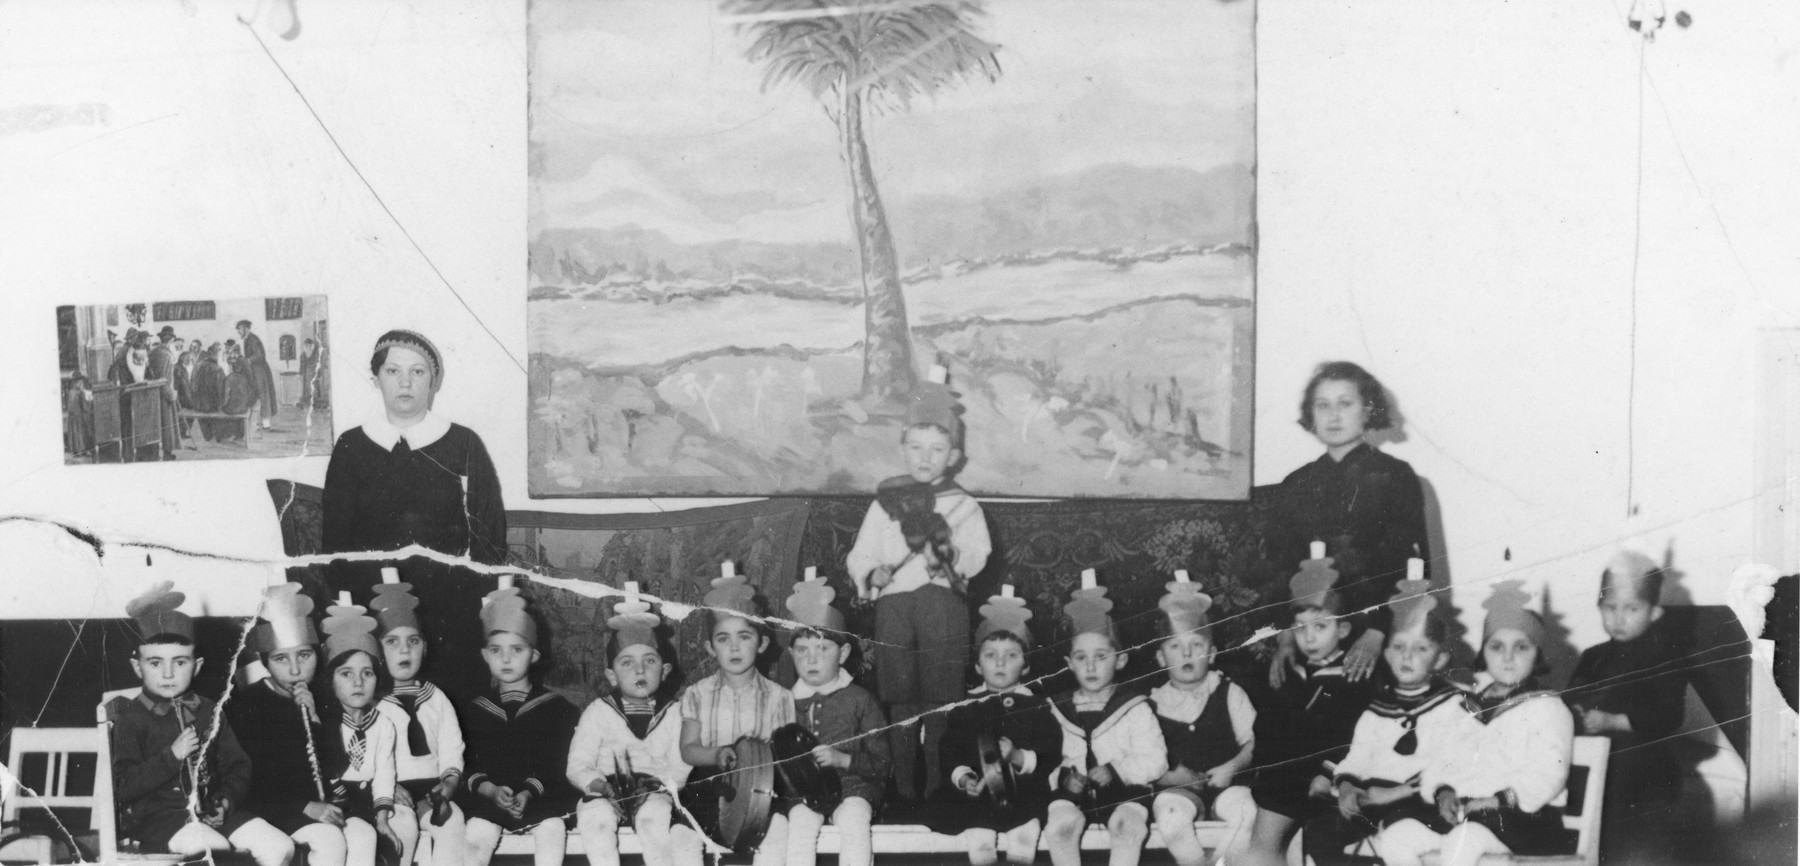 Students in a Jewish kindergarten in Kovno.  Helen Verblunsky is seated seventh from the left in the striped shirt.